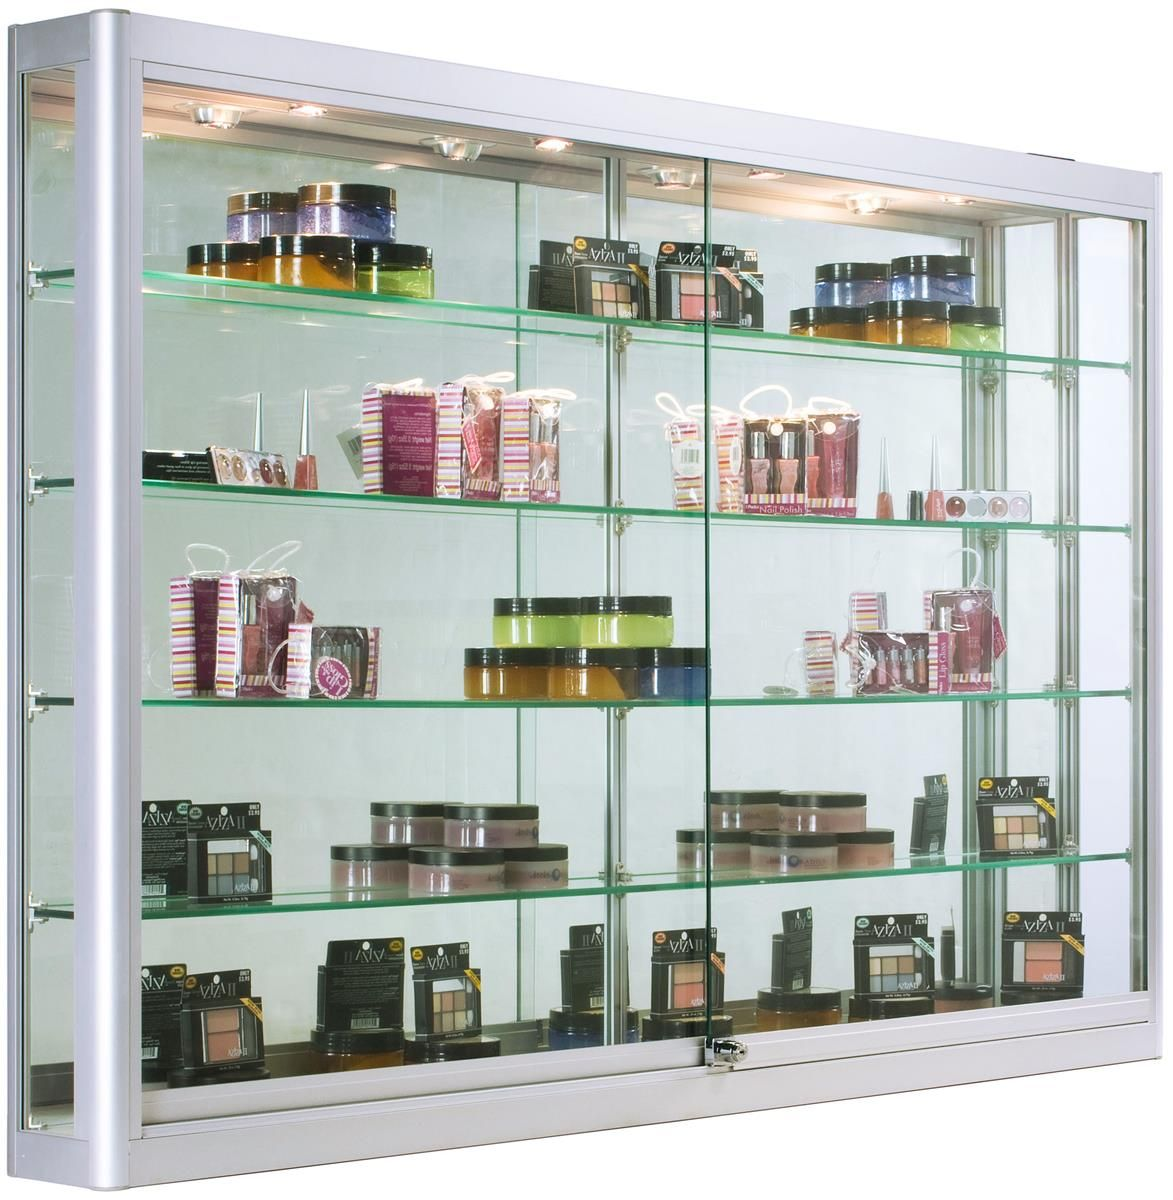 5ft Wall Mounted Display Case W 4 Top Led Lights Mirror Back Locking Silver In 2020 Wall Mounted Display Case Wall Mounted Display Cabinets Glass Shelves